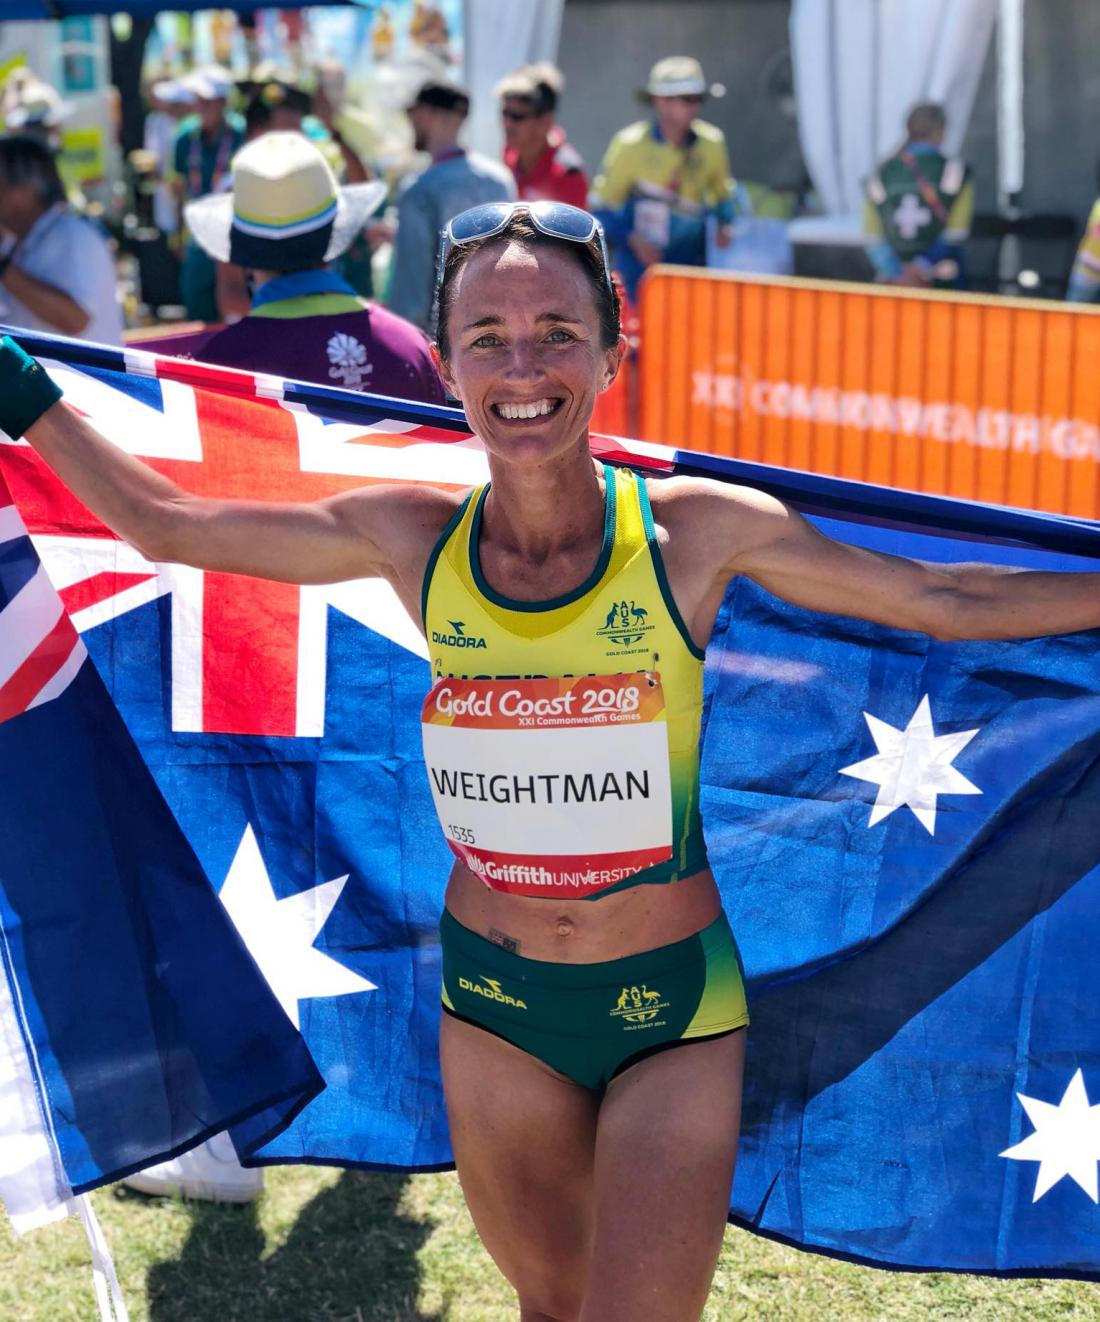 WEIGHTMAN BACK IN NOOSA WHERE IT ALL BEGAN